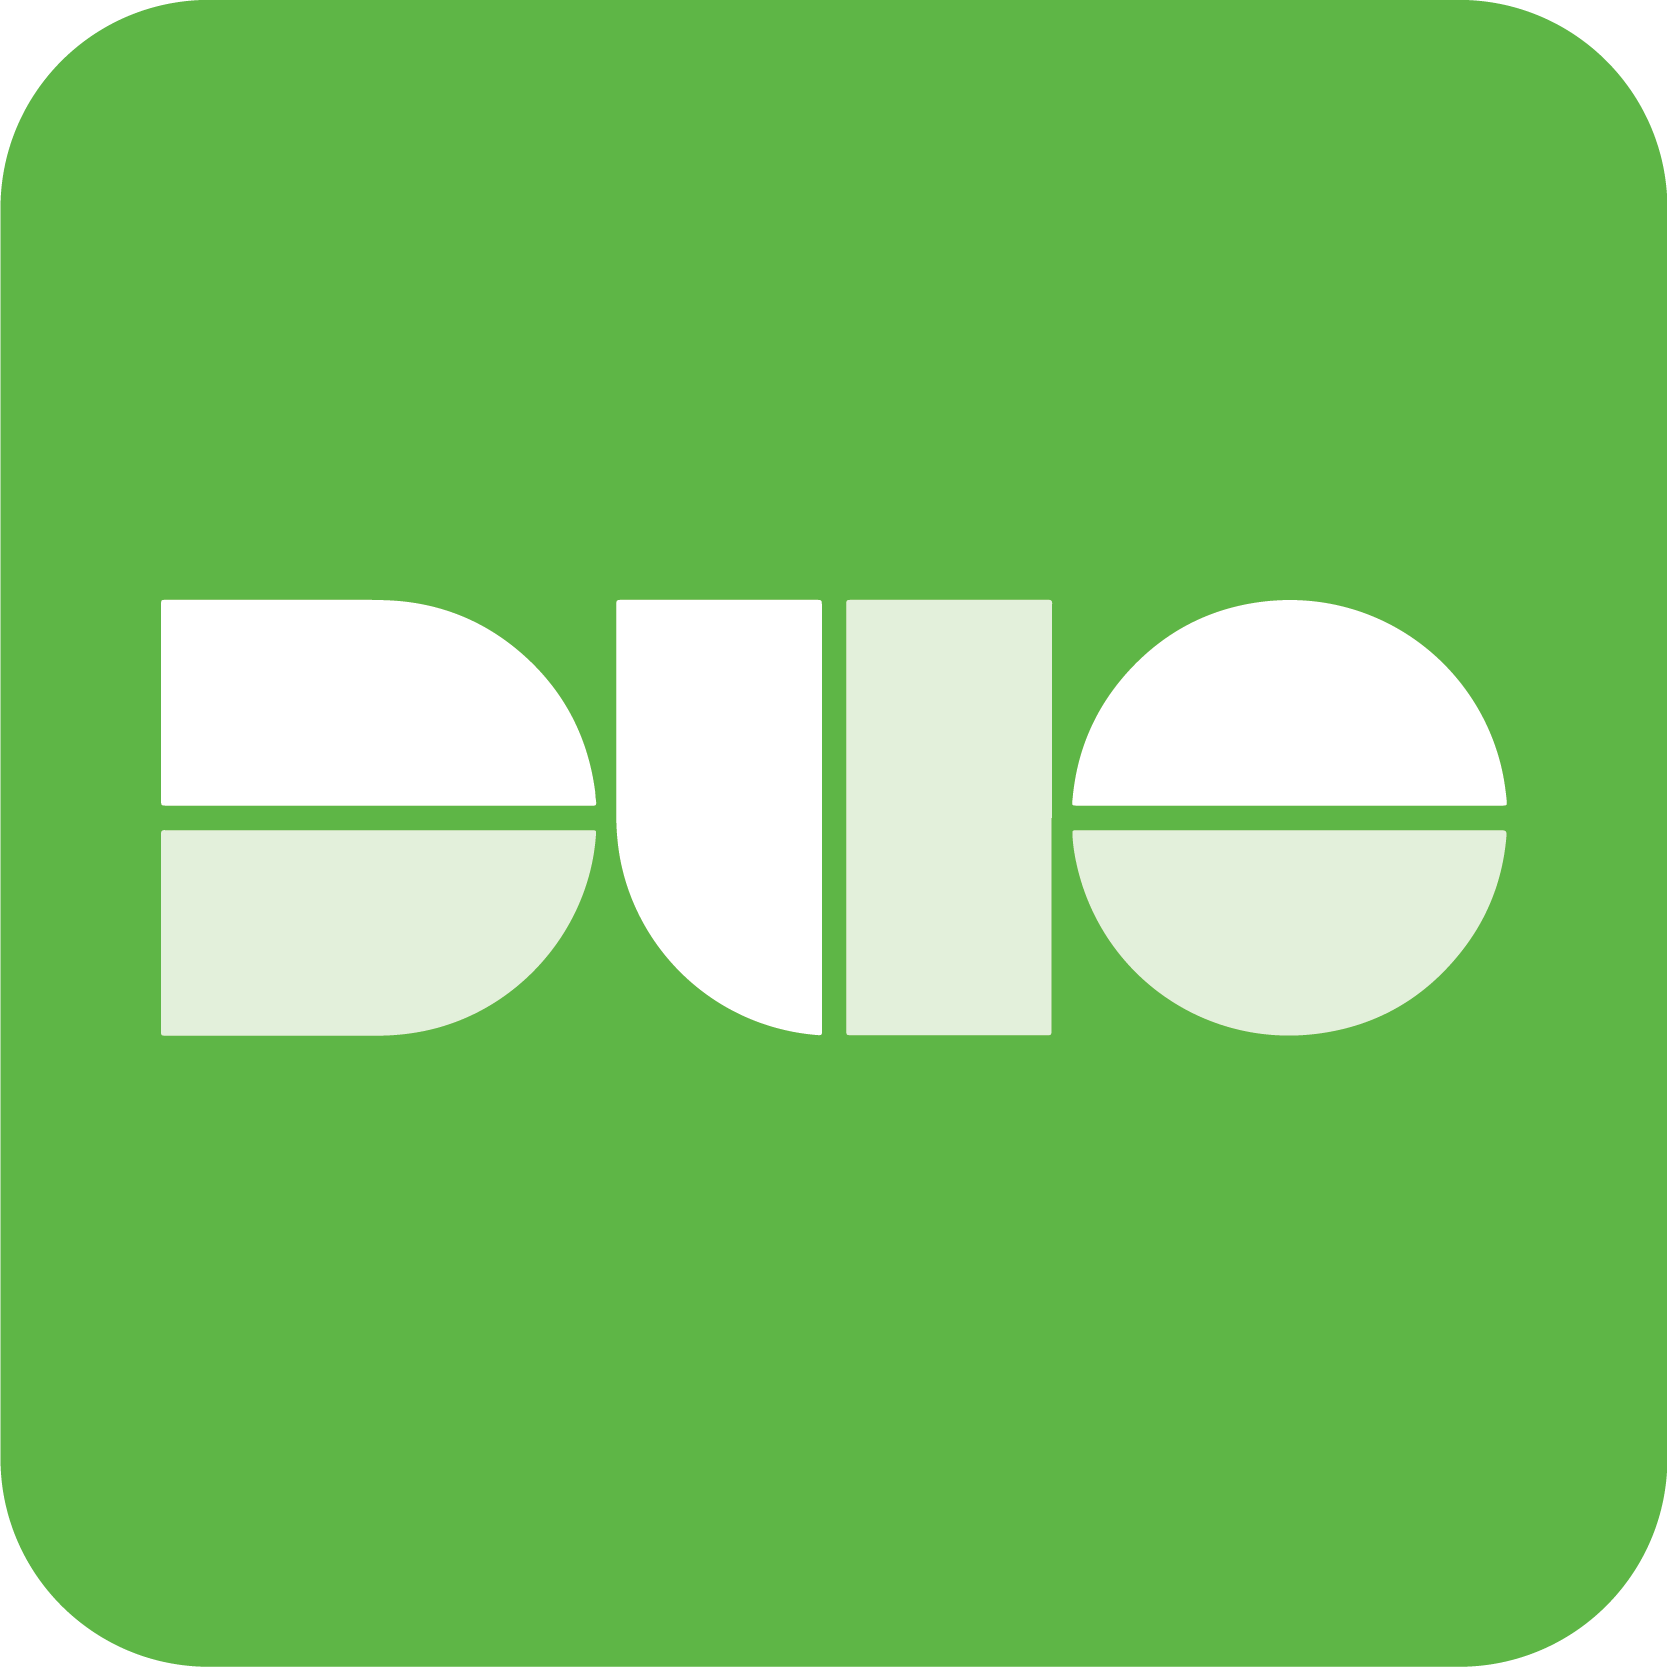 "Image with Green background and centered white block letters spelling ""DUO""."